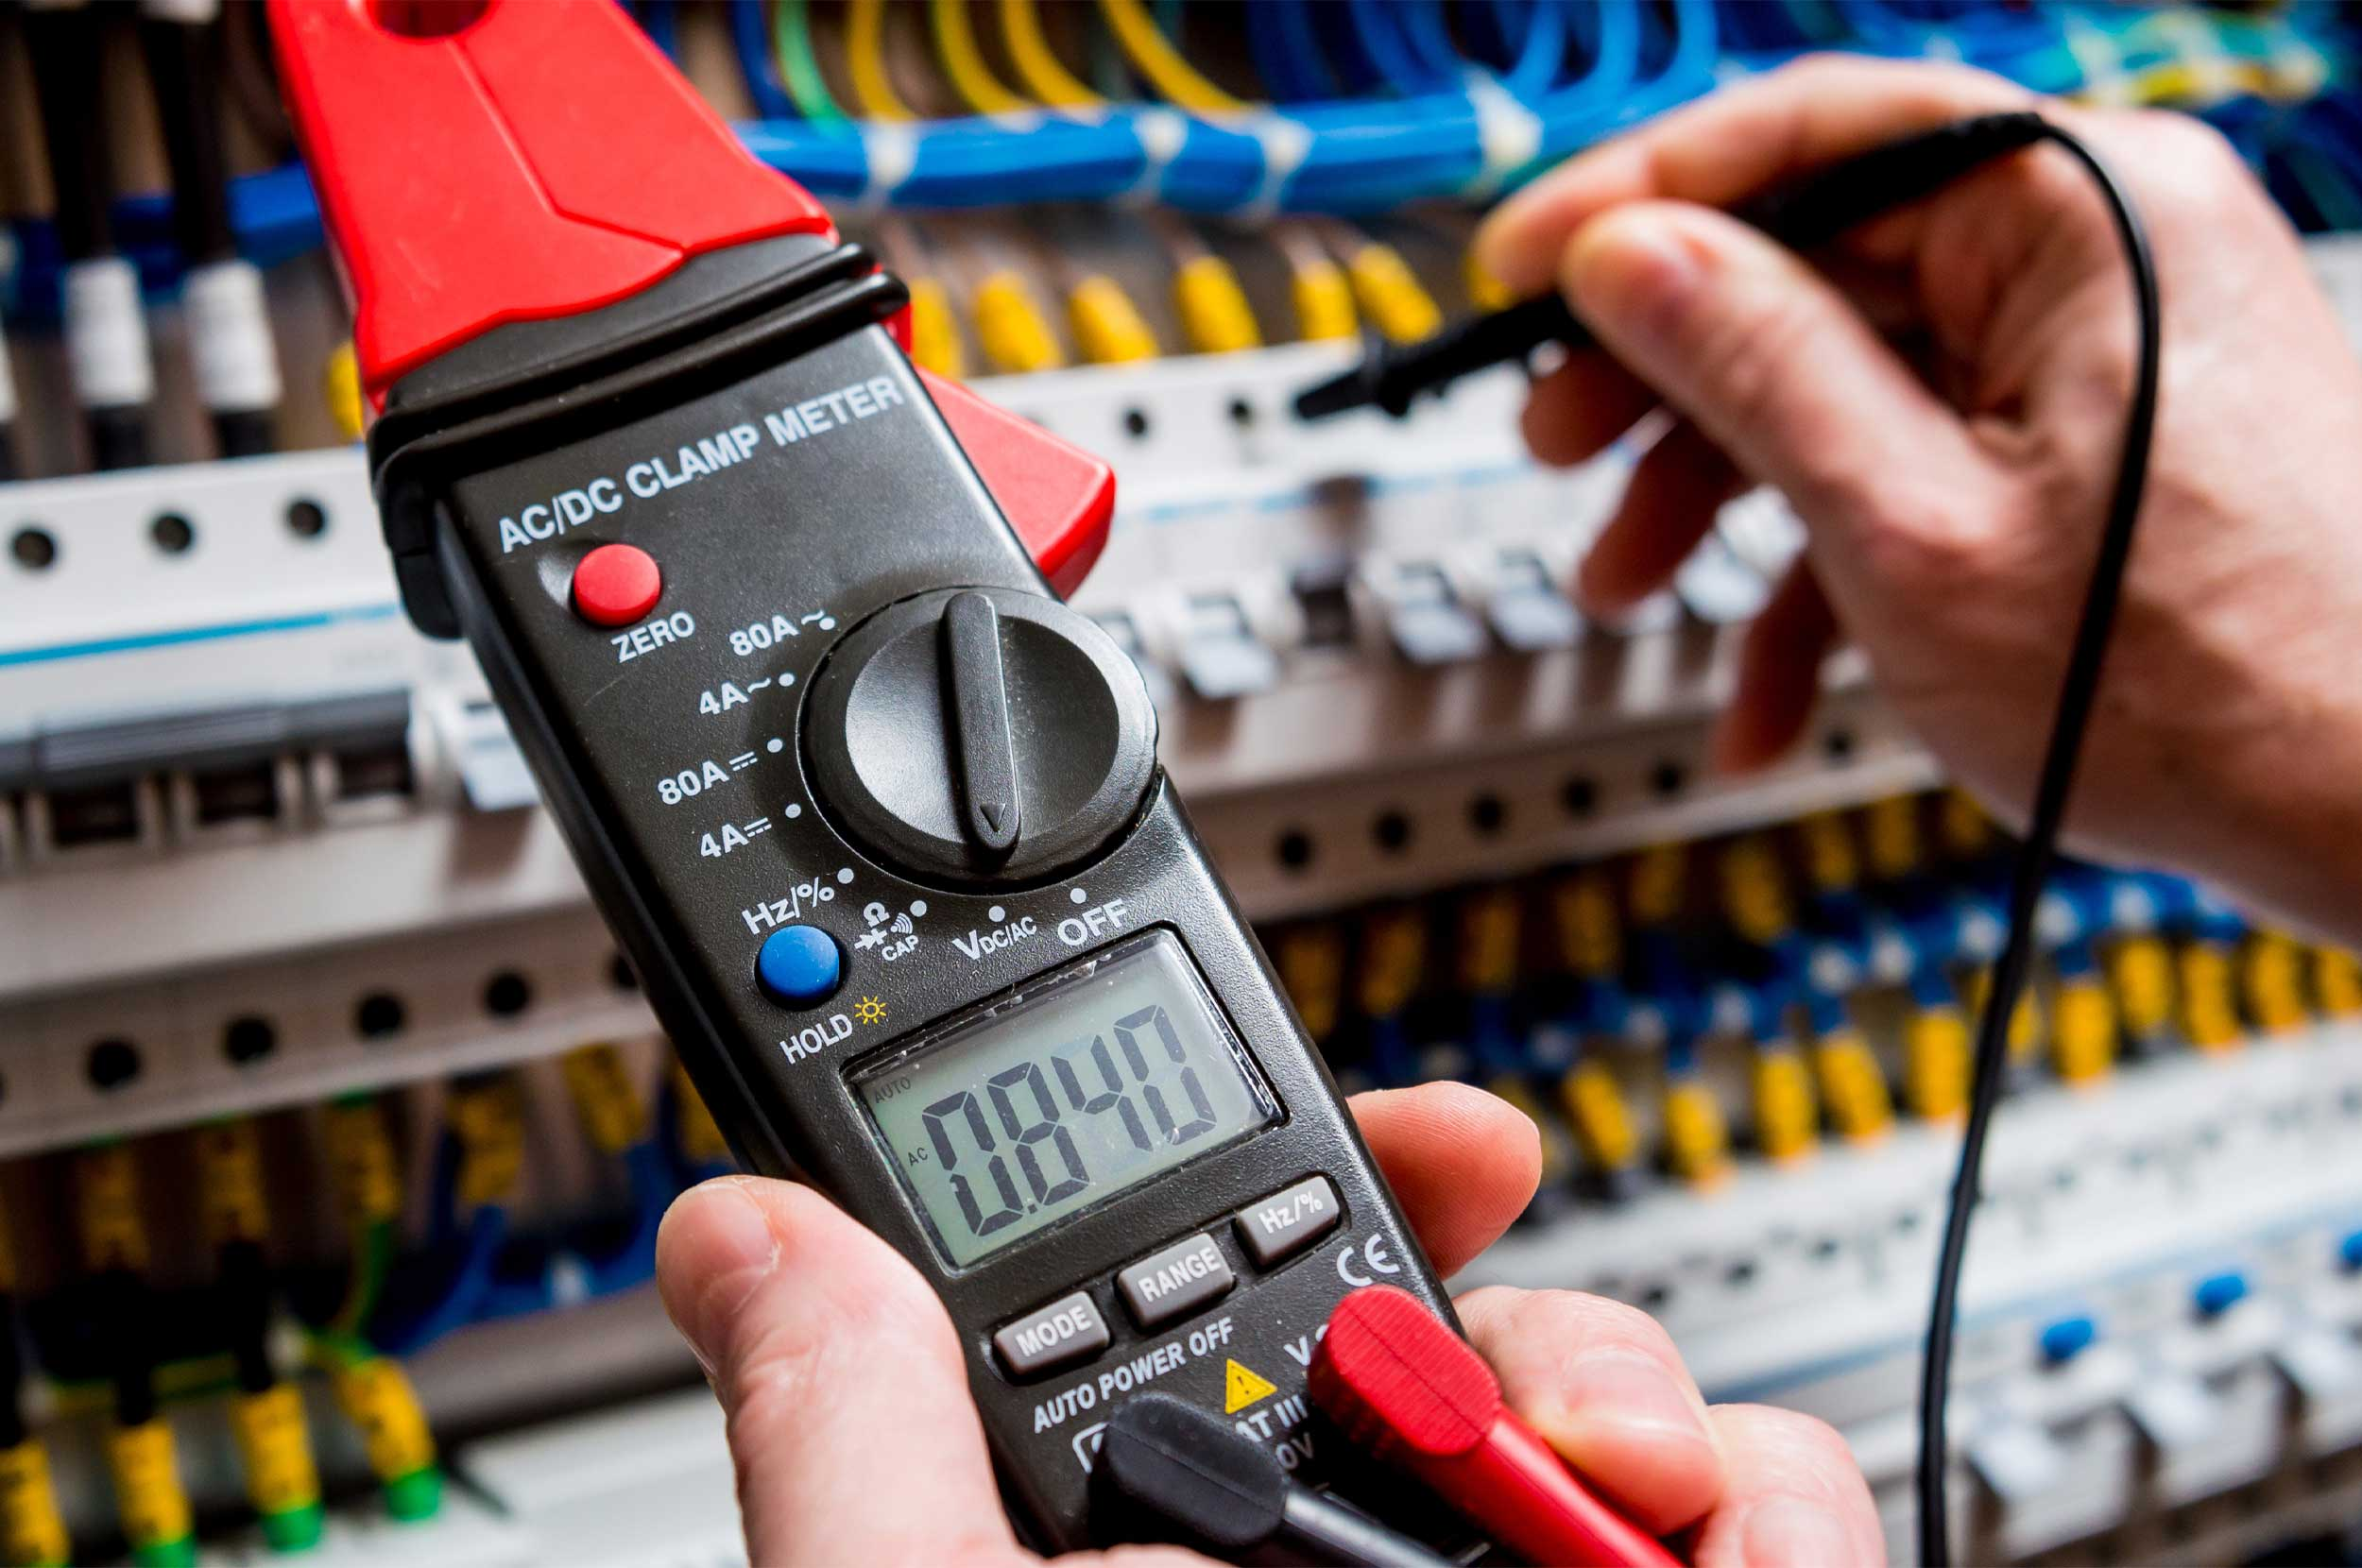 Multimeter tester being used to show electrical measurements.